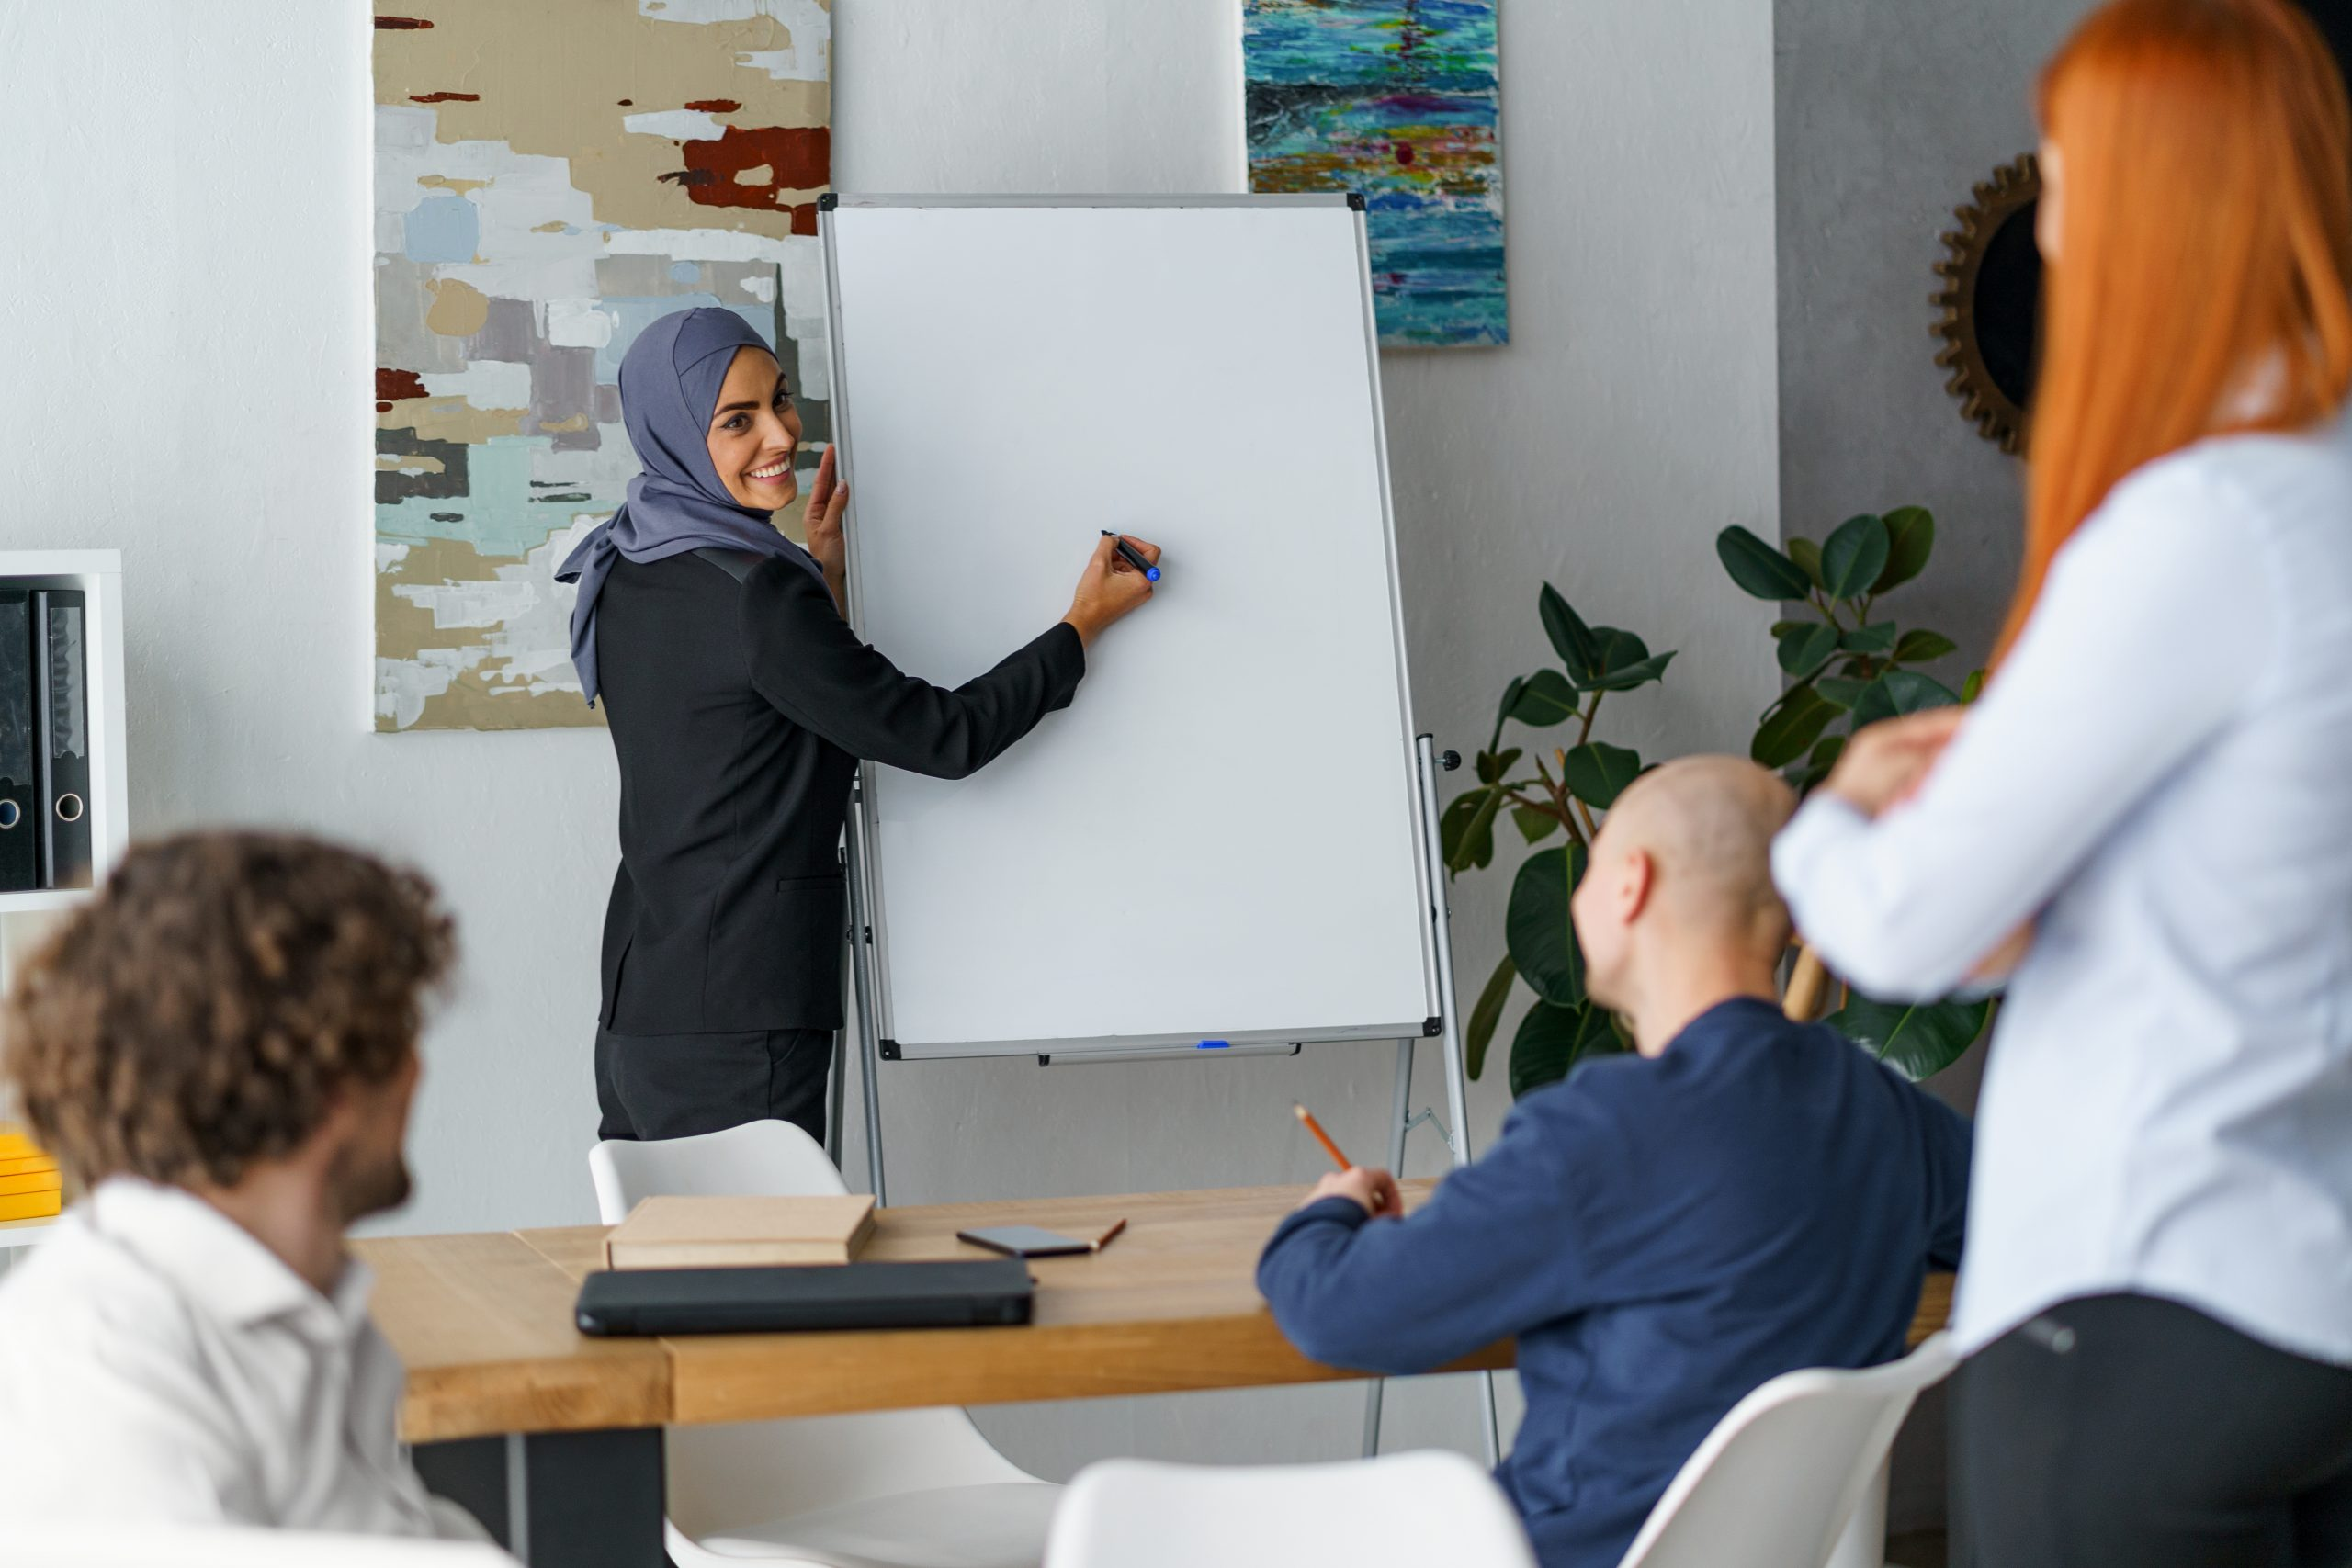 A woman writing on a whiteboard and delivering some training.